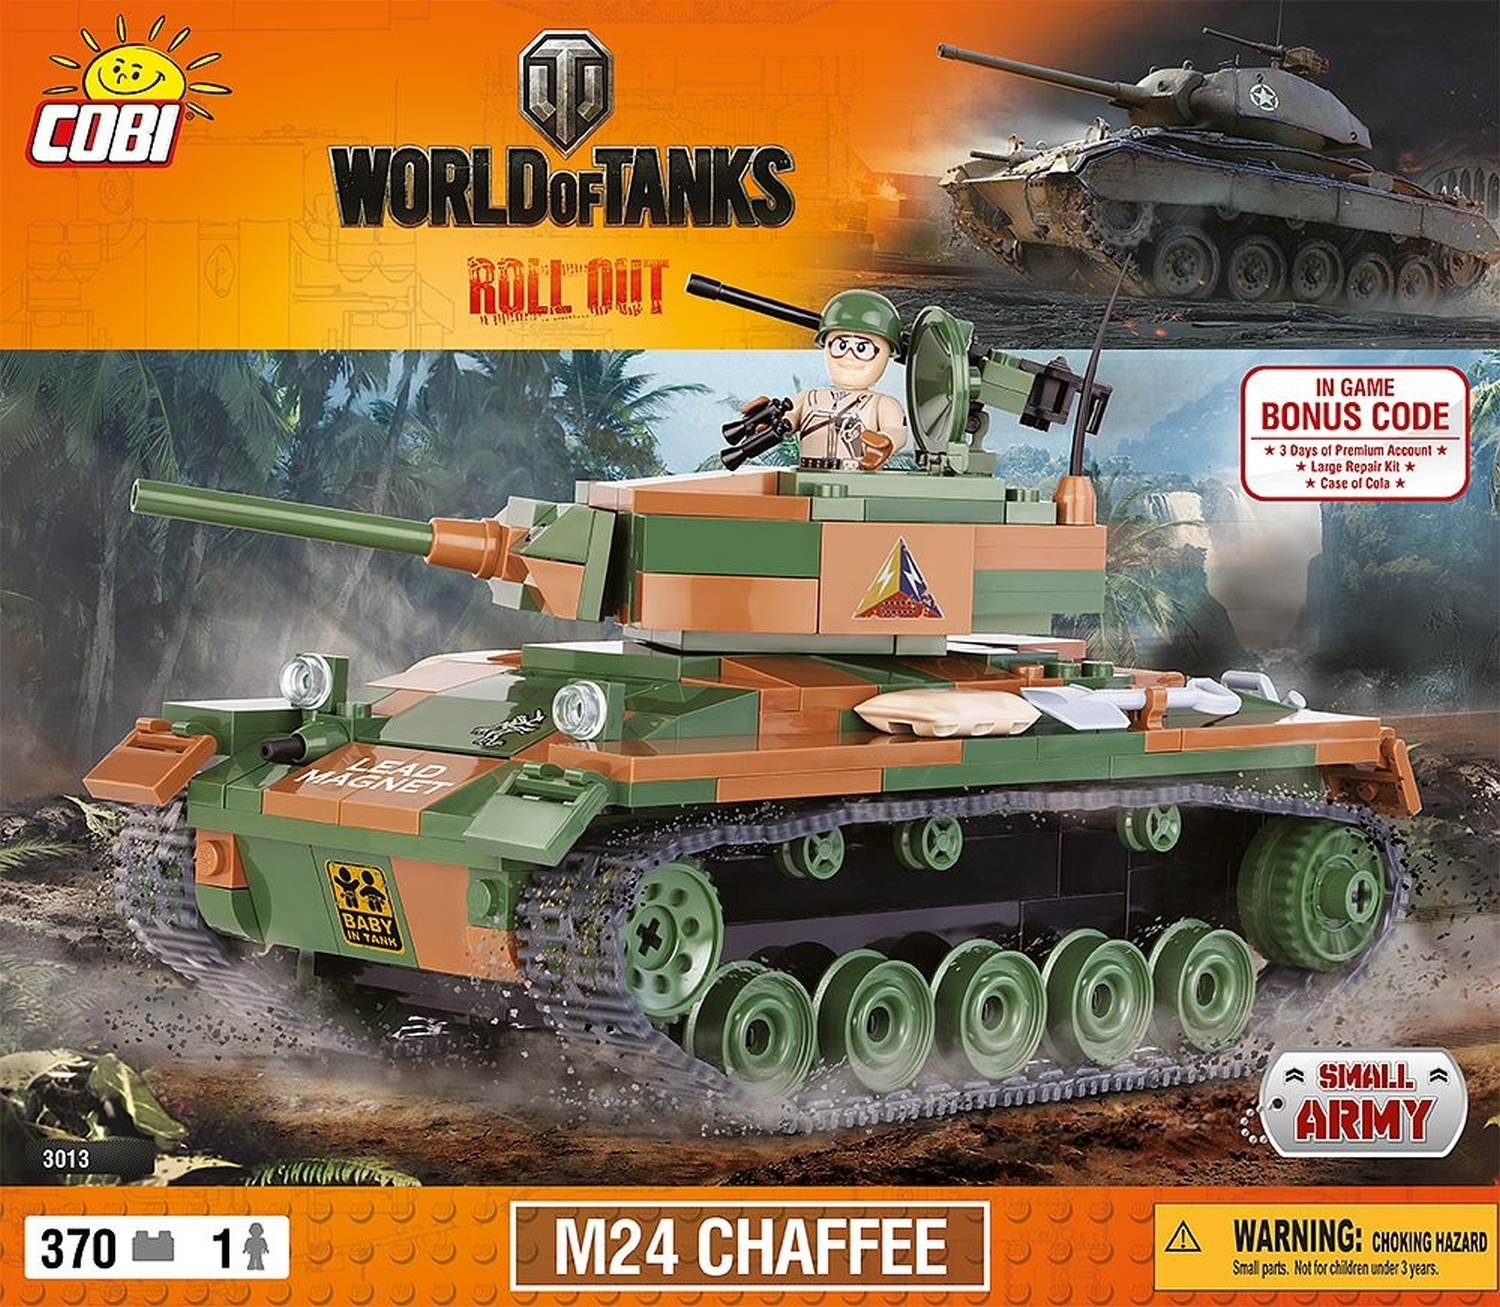 3013_Cobi_2.WK_World_of_Tanks_M24_Chaffee_www.super-bricks.de_1